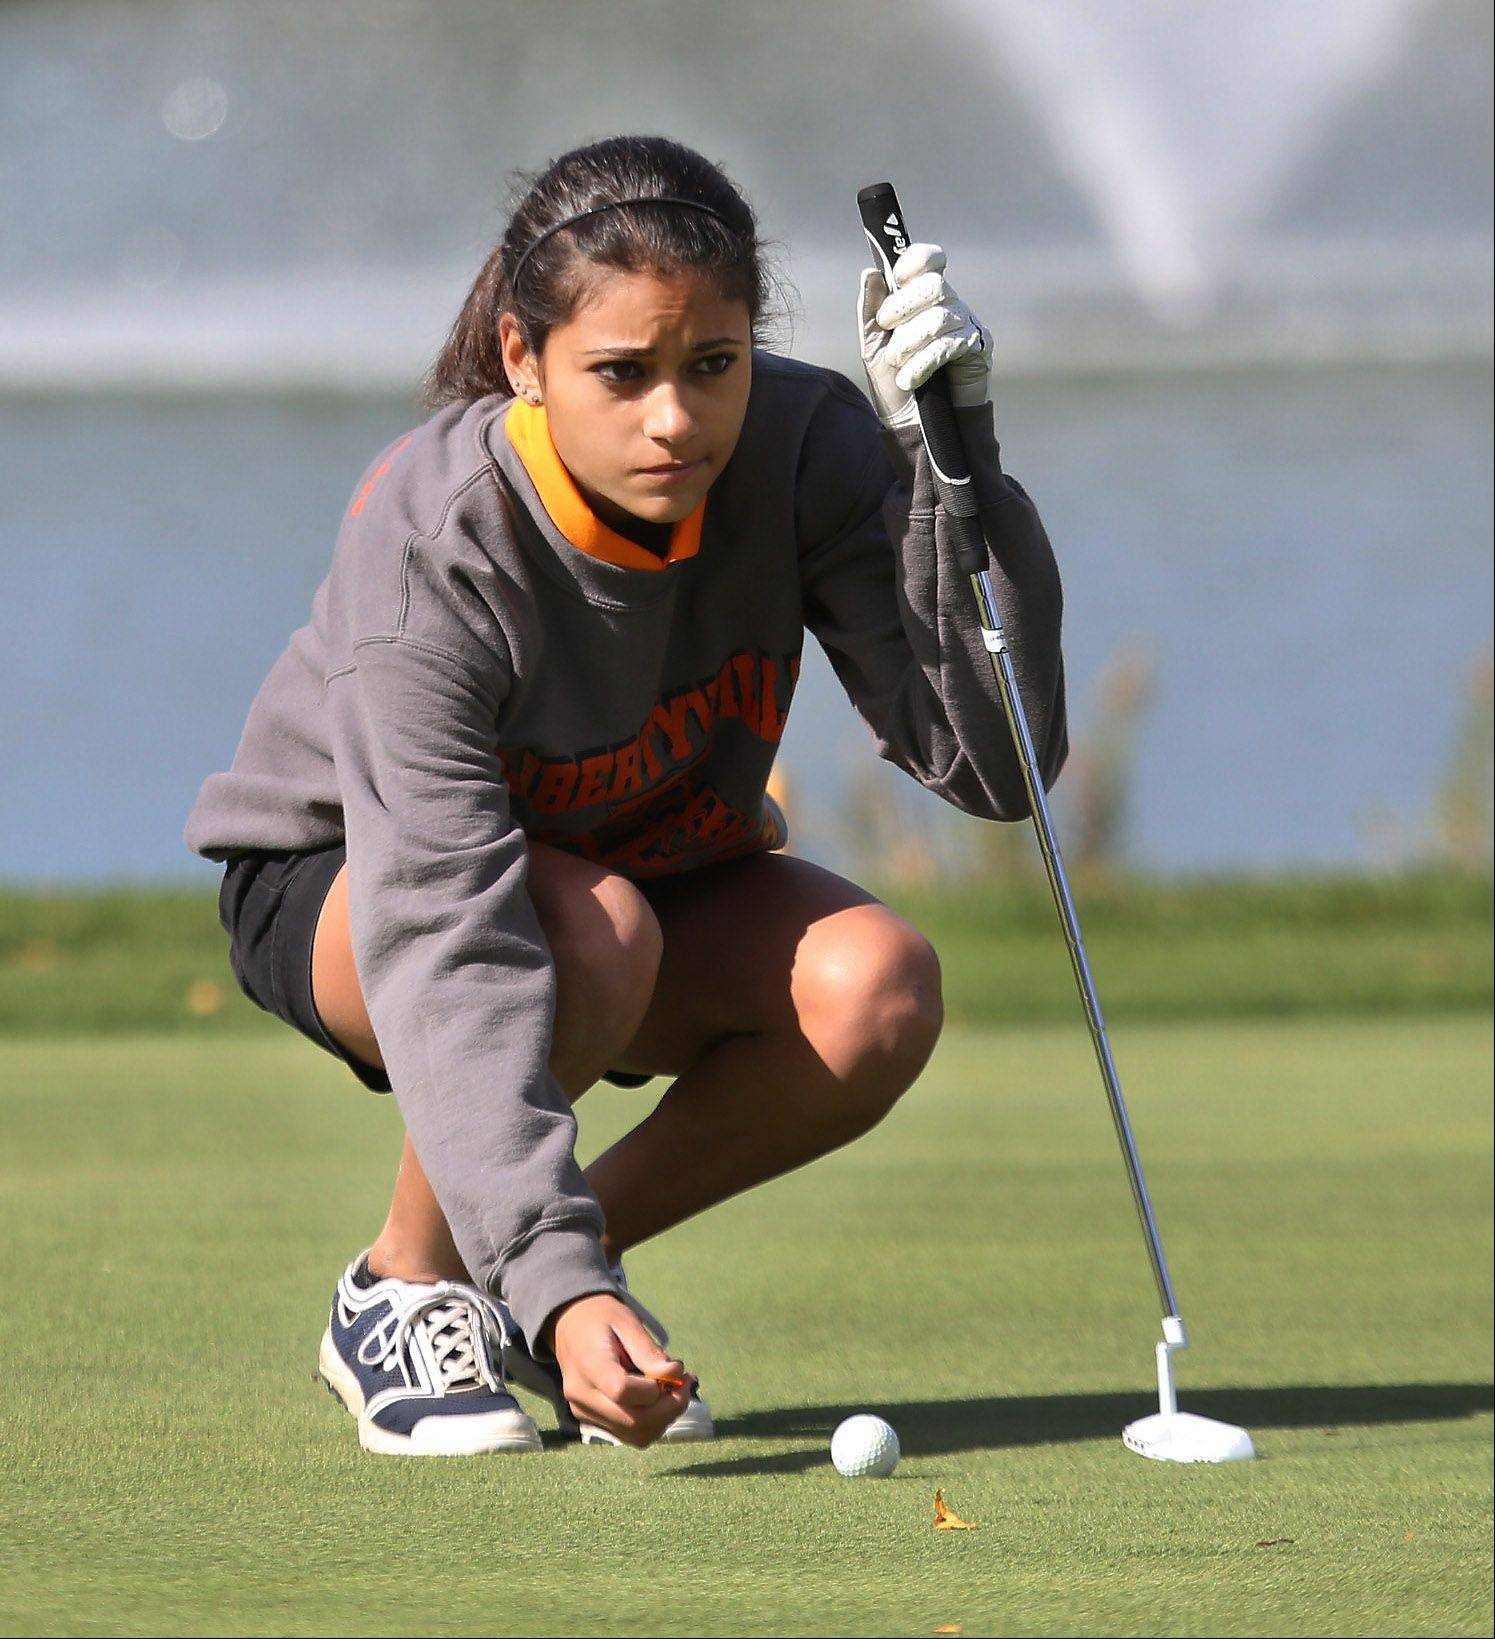 Libertyville golfer Simone Mikaelian lines up a putt on the 17th hole during the Buffalo Grove sectional Monday at the Buffalo Grove Golf Course.